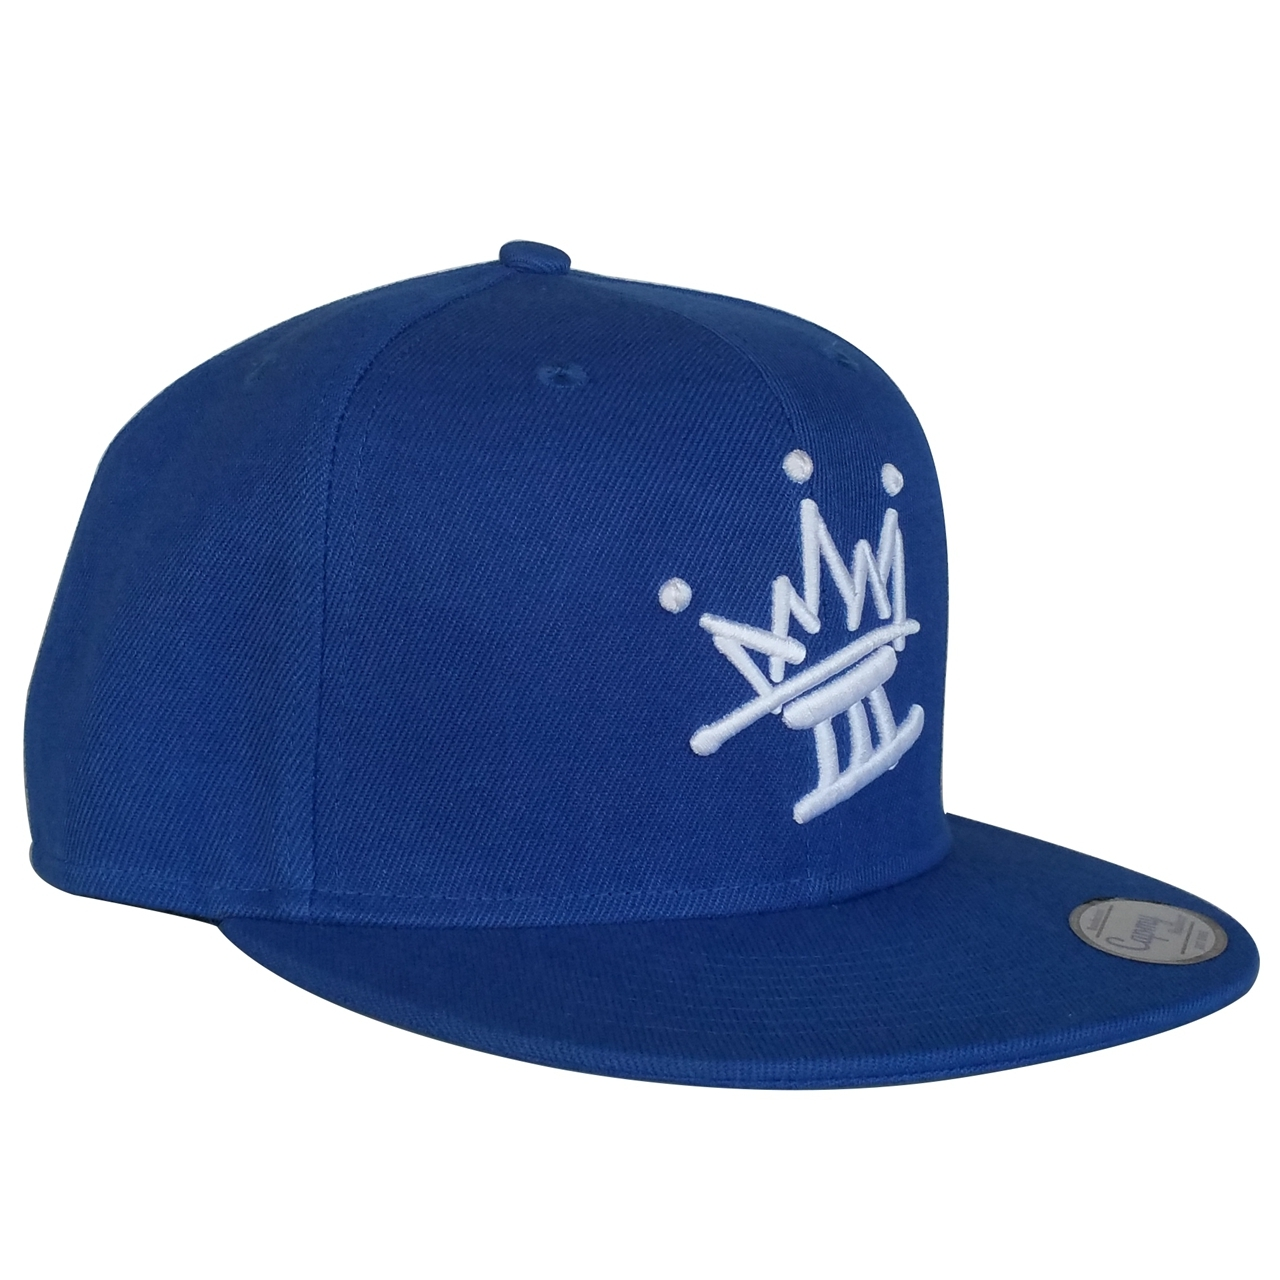 High quality royal blue baseball cap supplier for sports hat